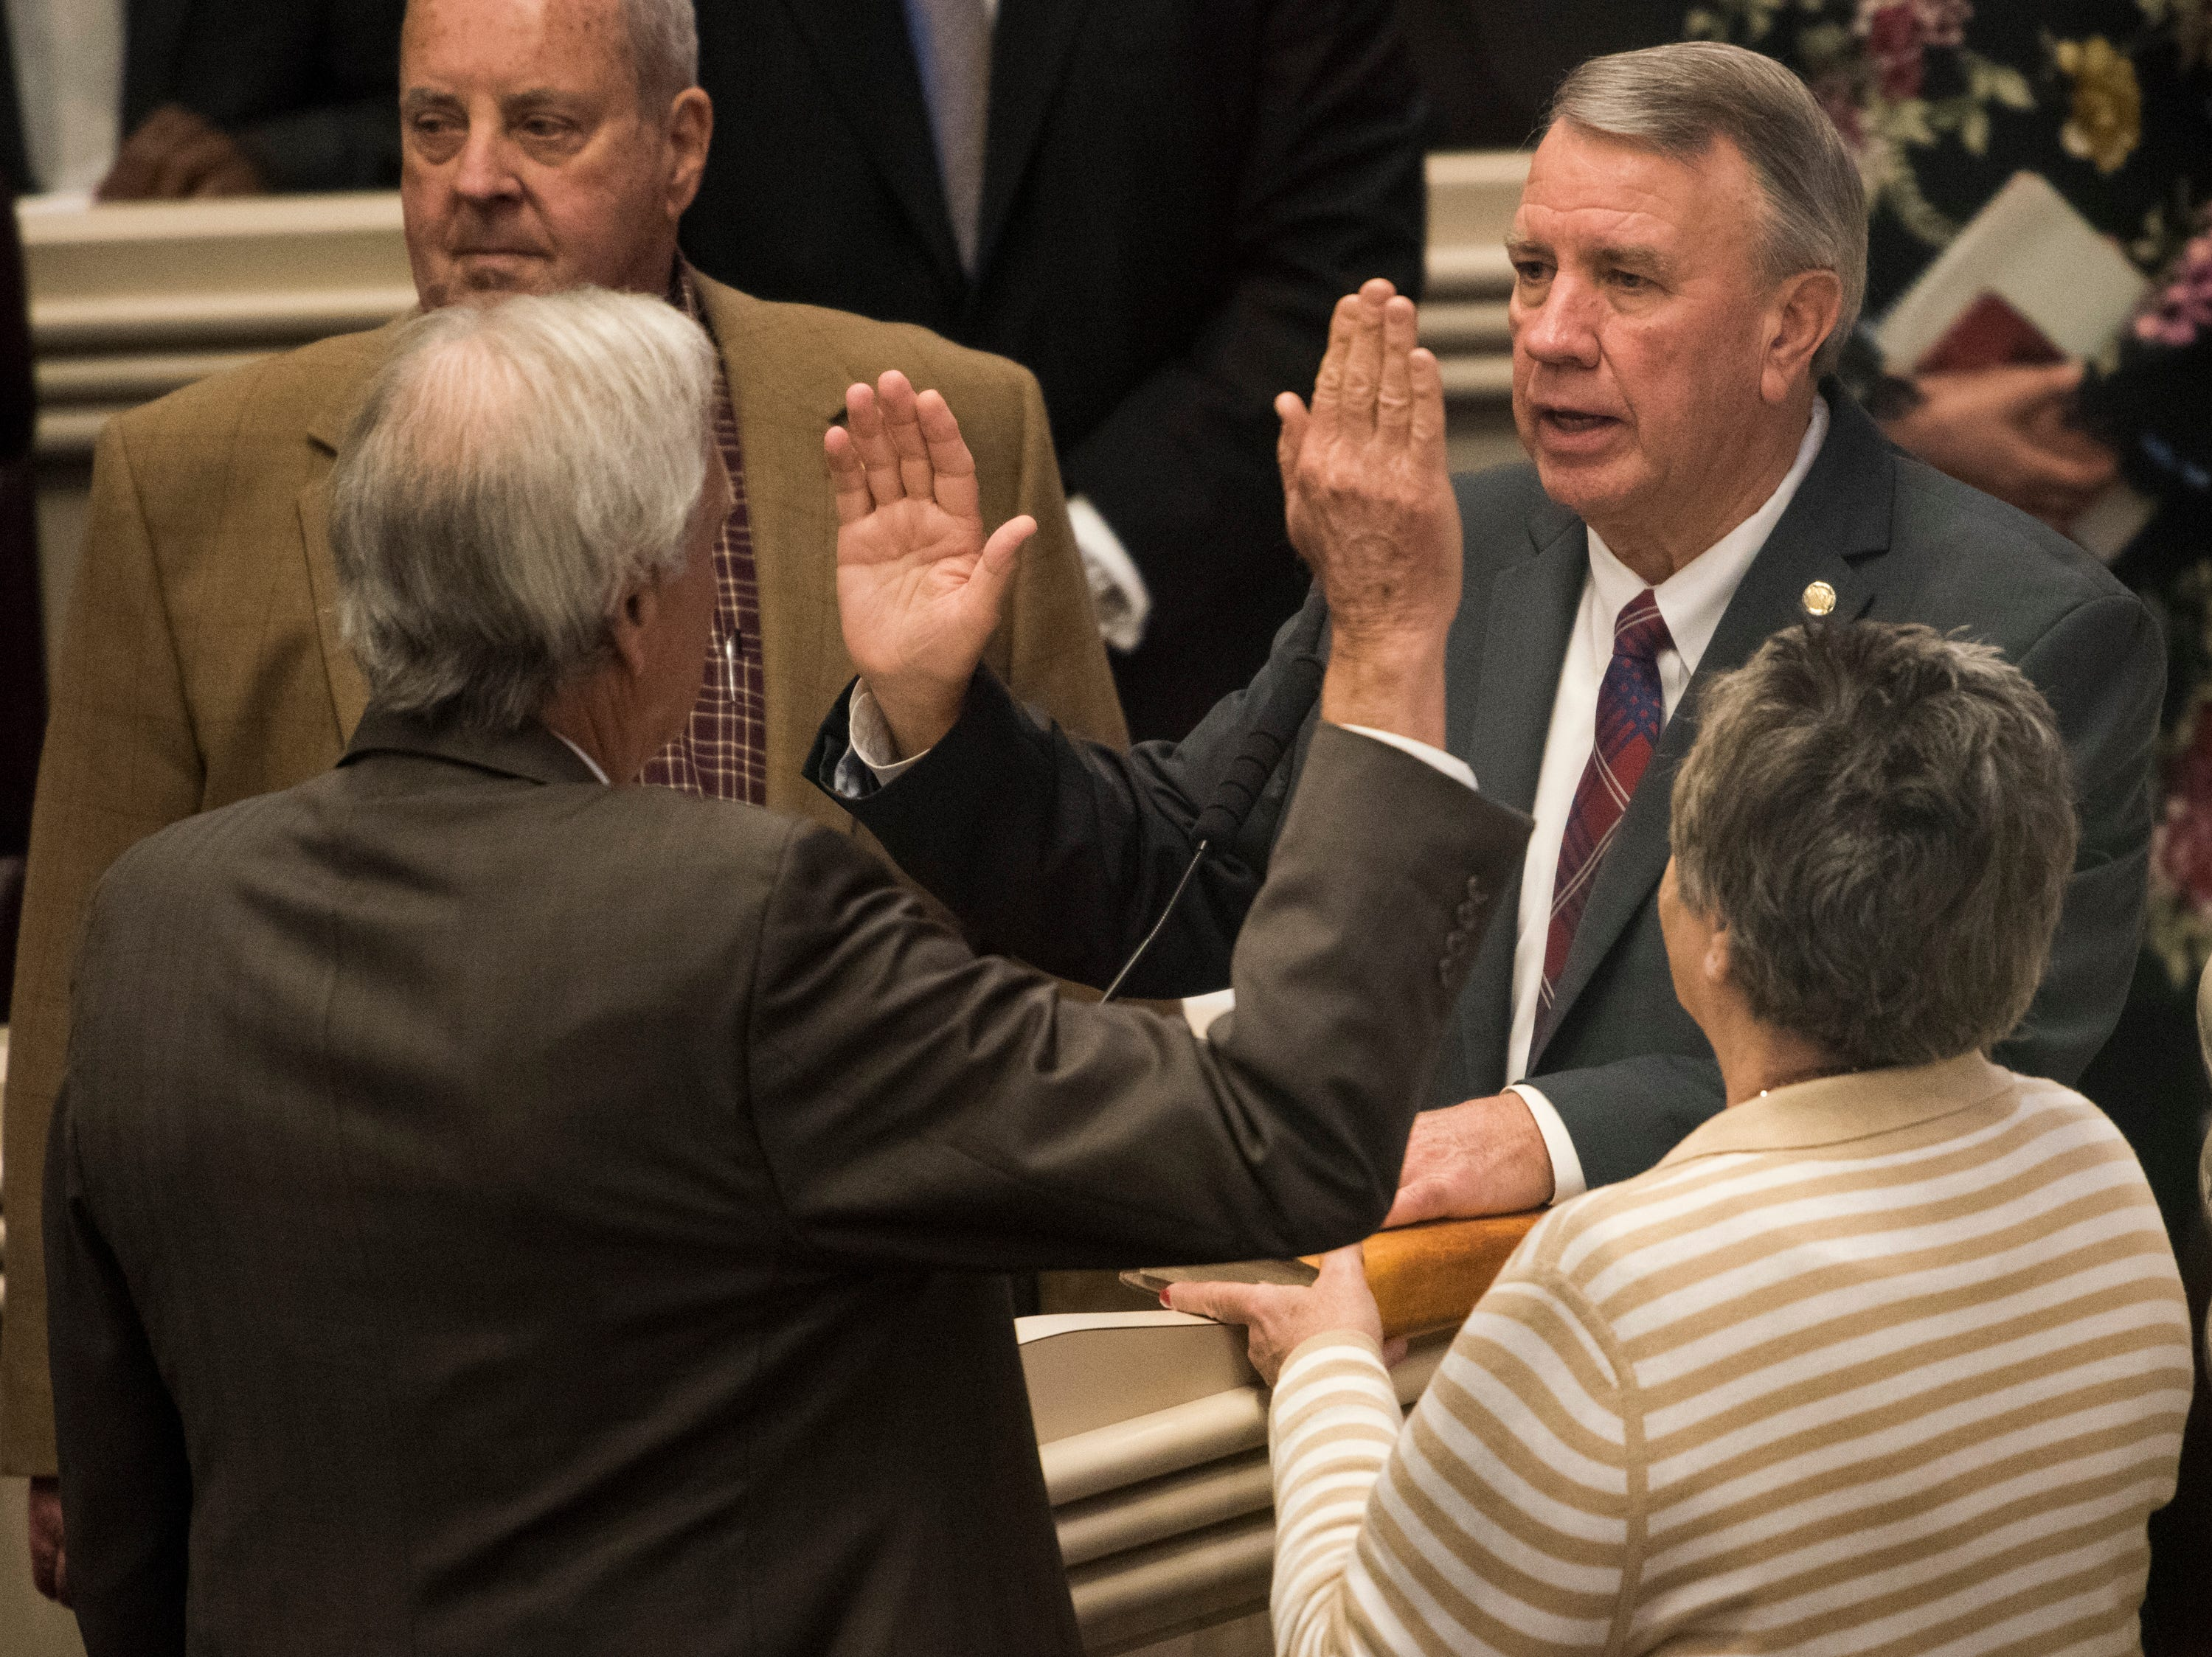 House Speaker Mac McCutcheon is sworn in during the 2019 Alabama Legislature's organizational session at the Alabama State House in Montgomery, Ala., on Tuesday, Jan. 8, 2019.